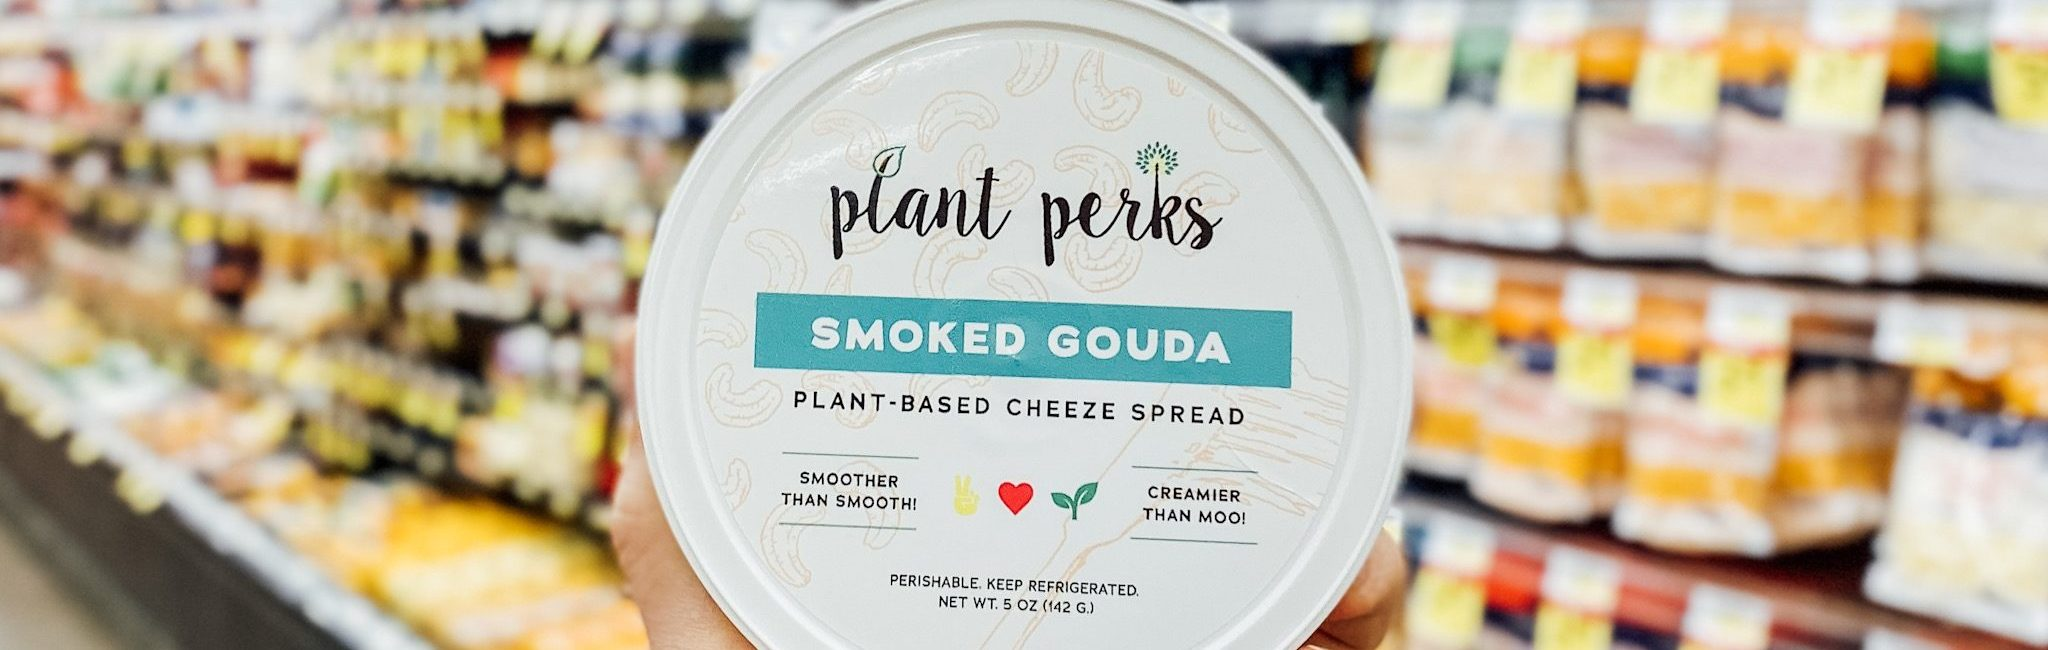 Plant Perks Smoked Gouda Vegan Cheese container in a grocery store